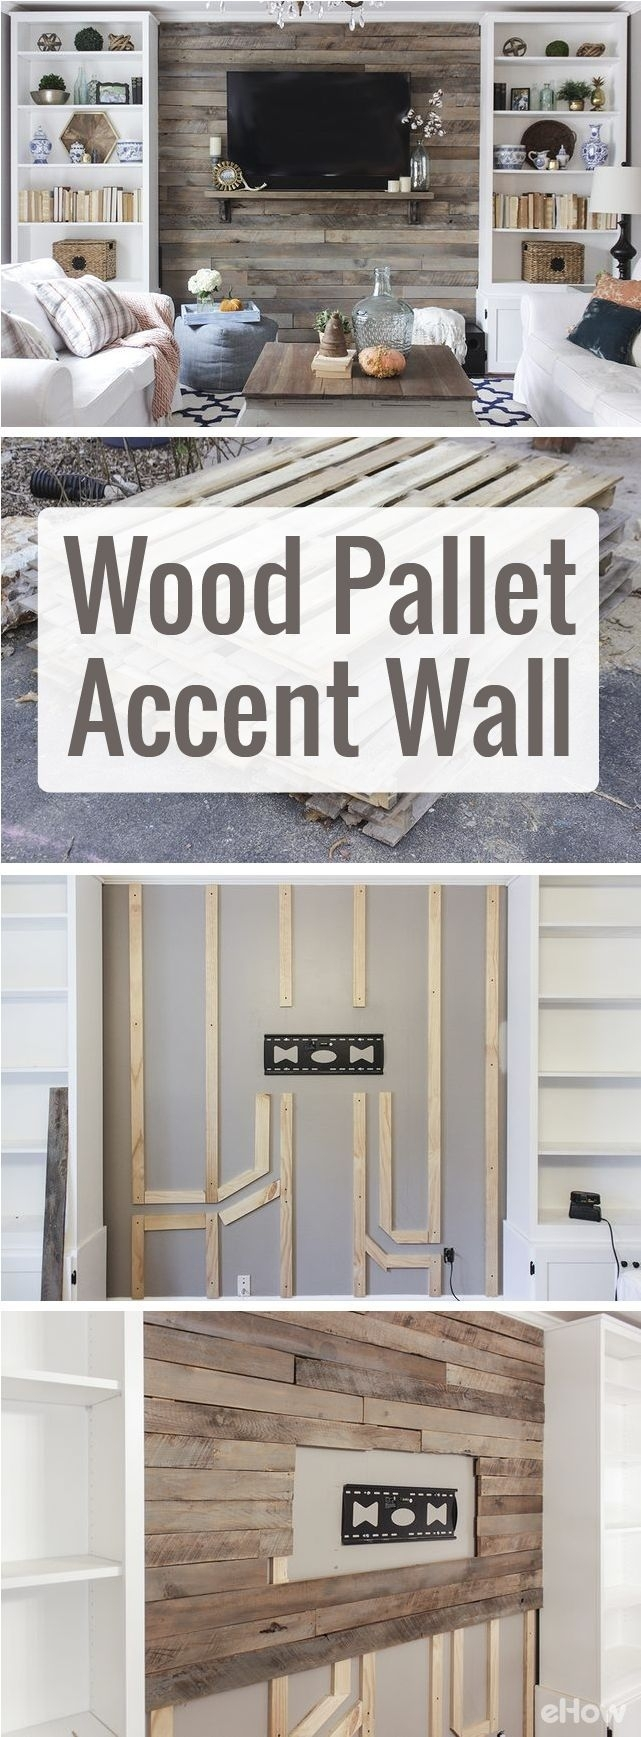 How To Build A Pallet Wall | Project Nursery, Nursery Design And For Most Current Wall Accents With Pallets (Gallery 7 of 15)